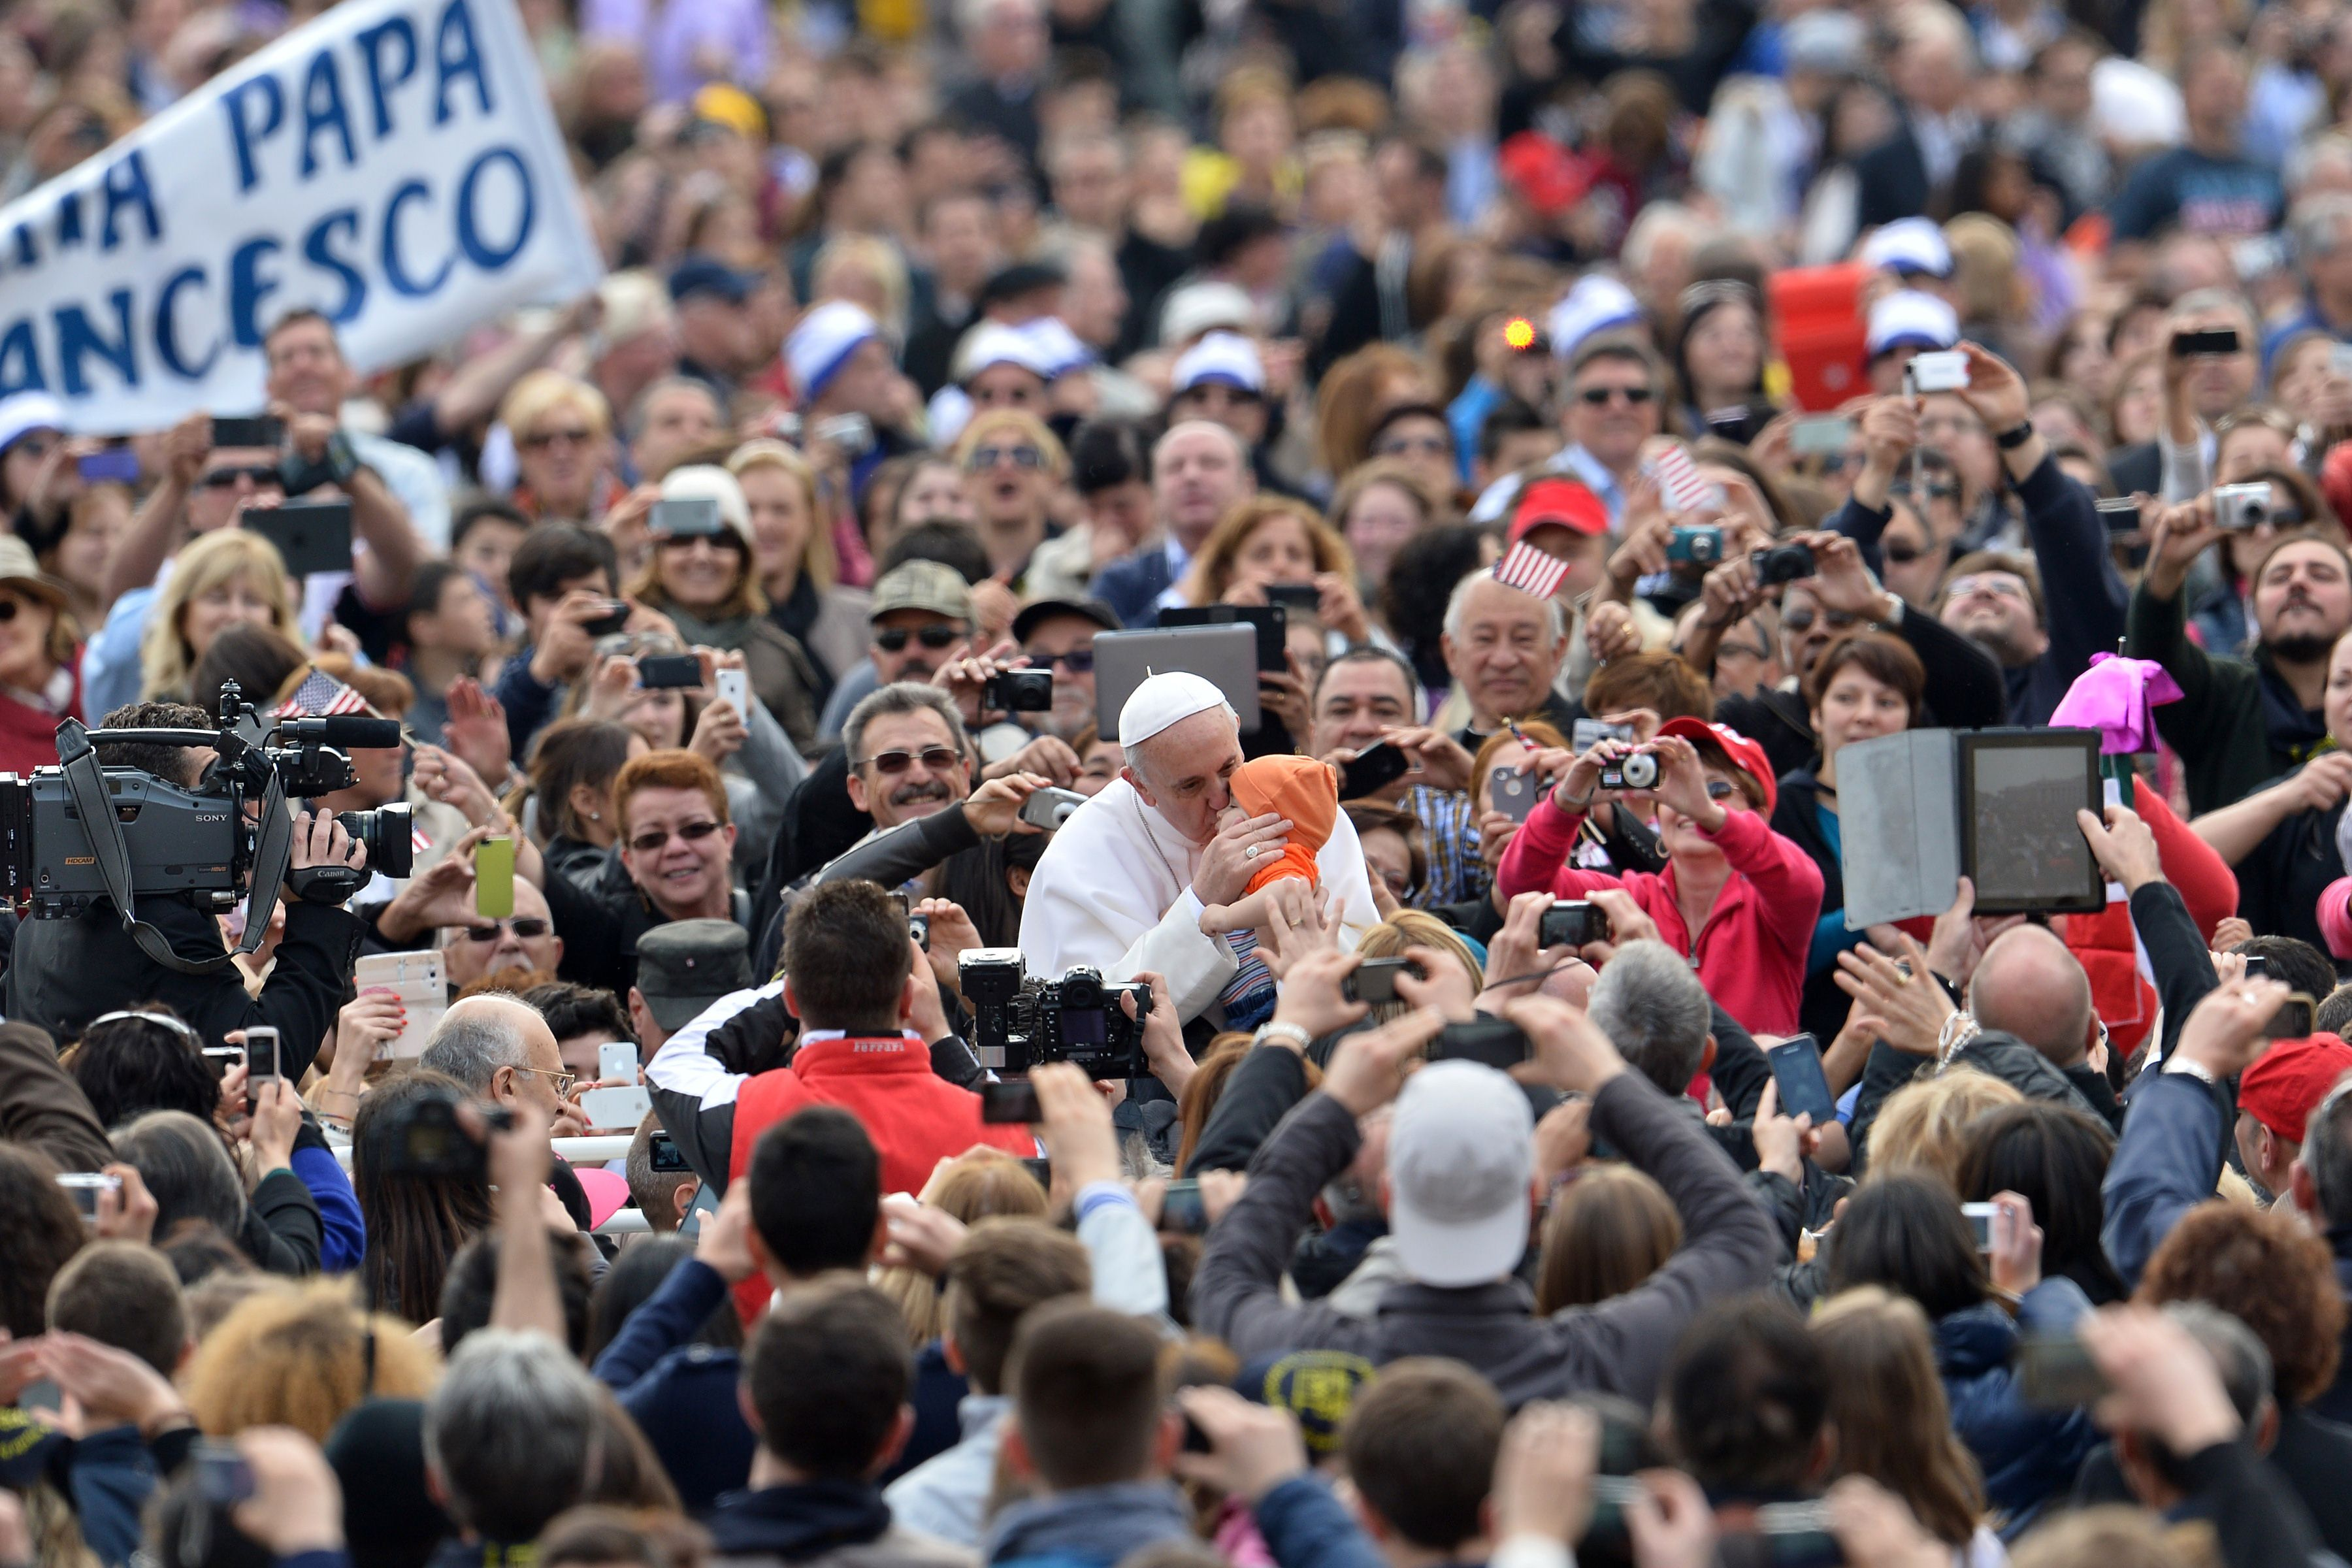 By Ken Ochs. The American public has fallen victim to the narrative that the pontificate of Pope Francis epitomizes anything more than a renewed emphasis on a set of values that the Catholic Church has held for centuries. Photo by AFP-JIJI